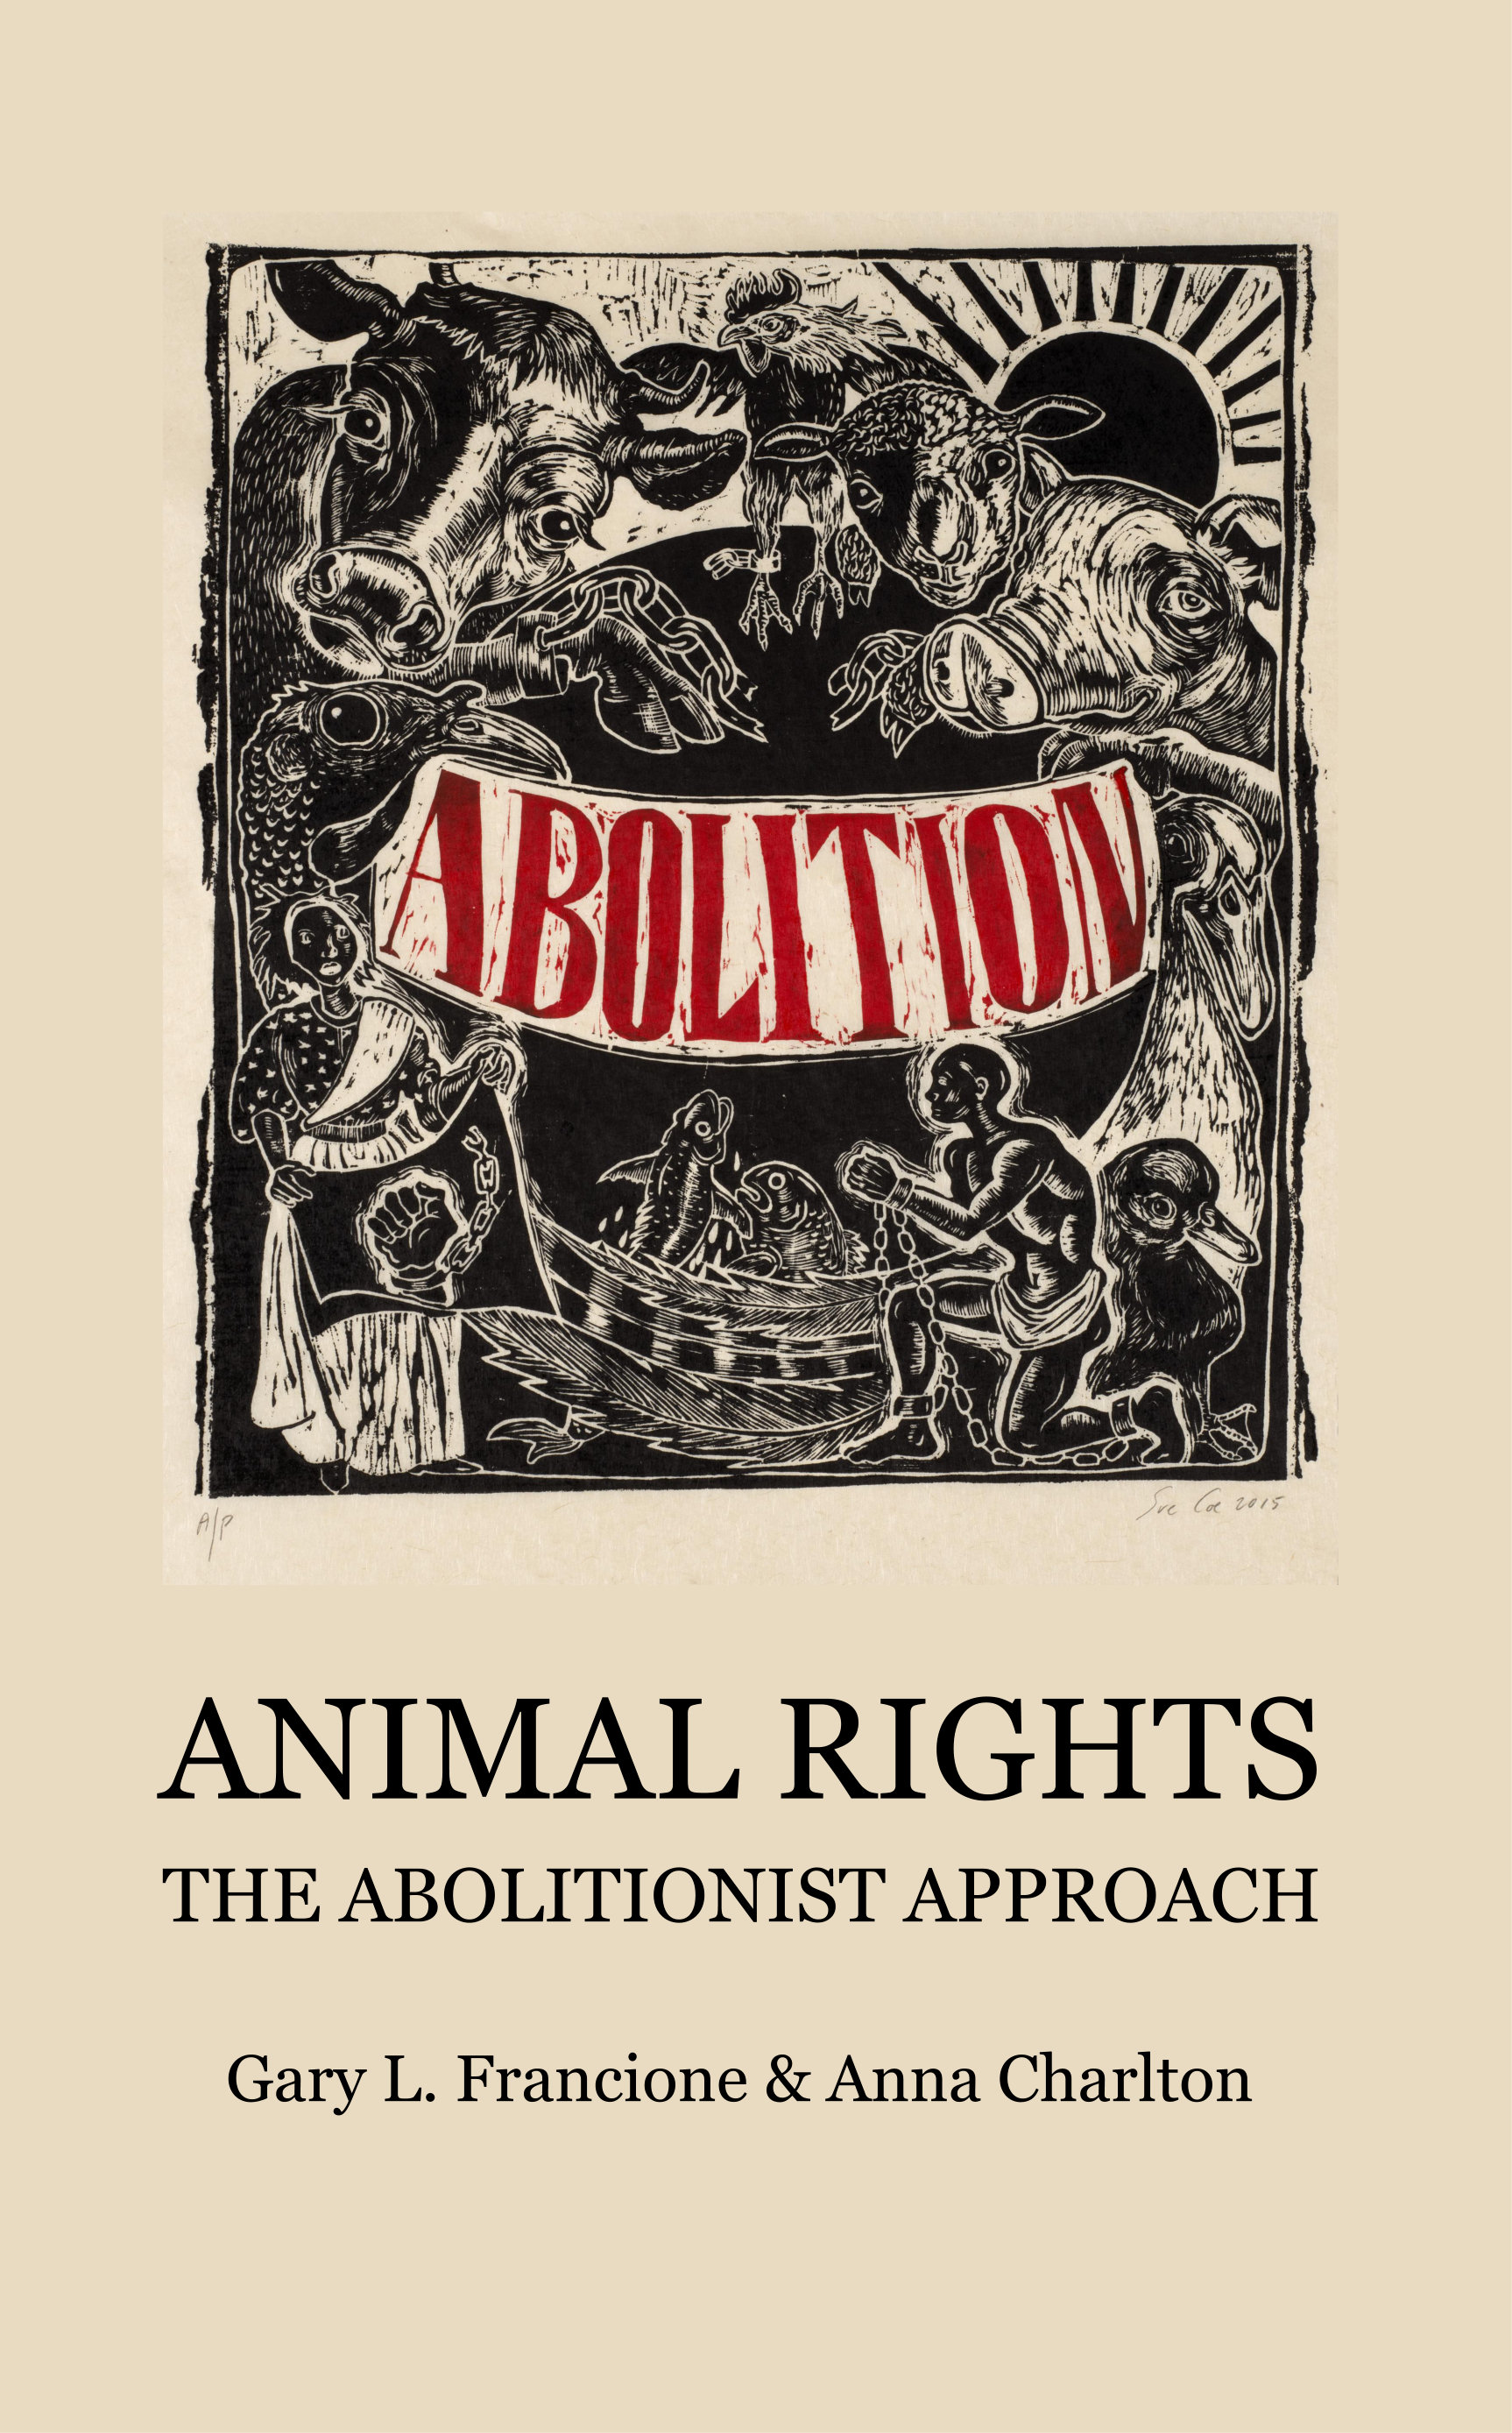 against animal rights essay jallikattu debate civilsdaily animal  books animal rights the abolitionist approach animal rights the abolitionist approach essay against